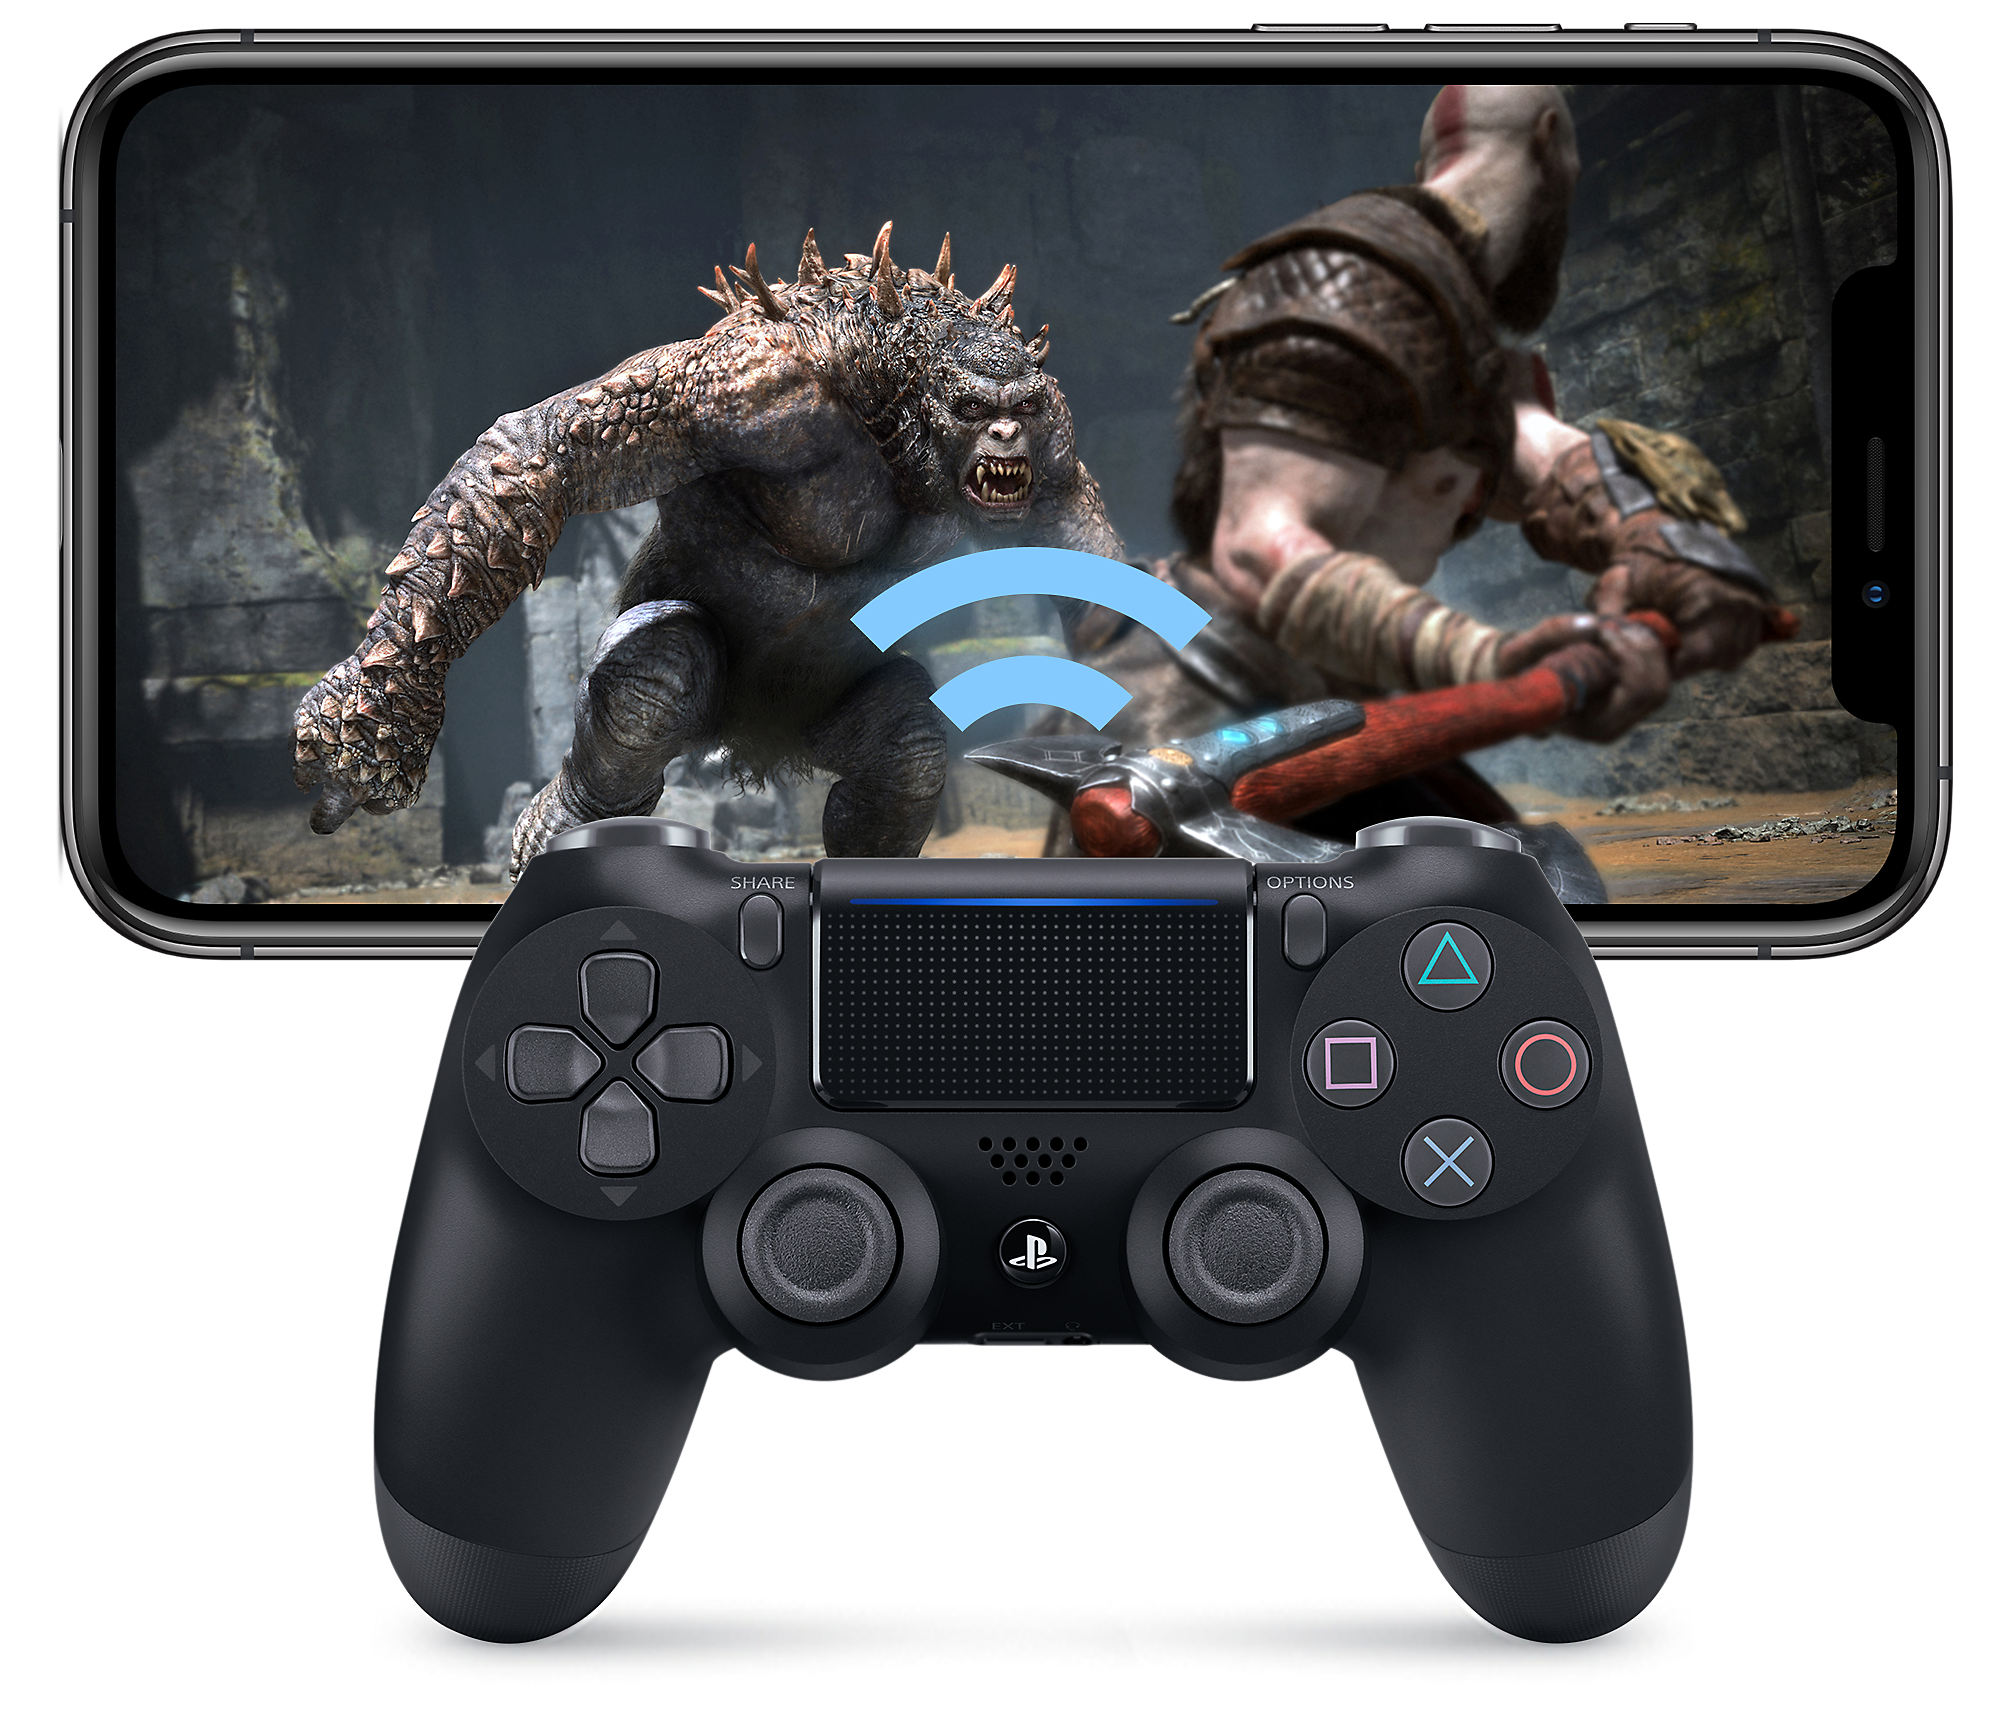 Remote Play - What is PS4 Remote Play iPhone Image